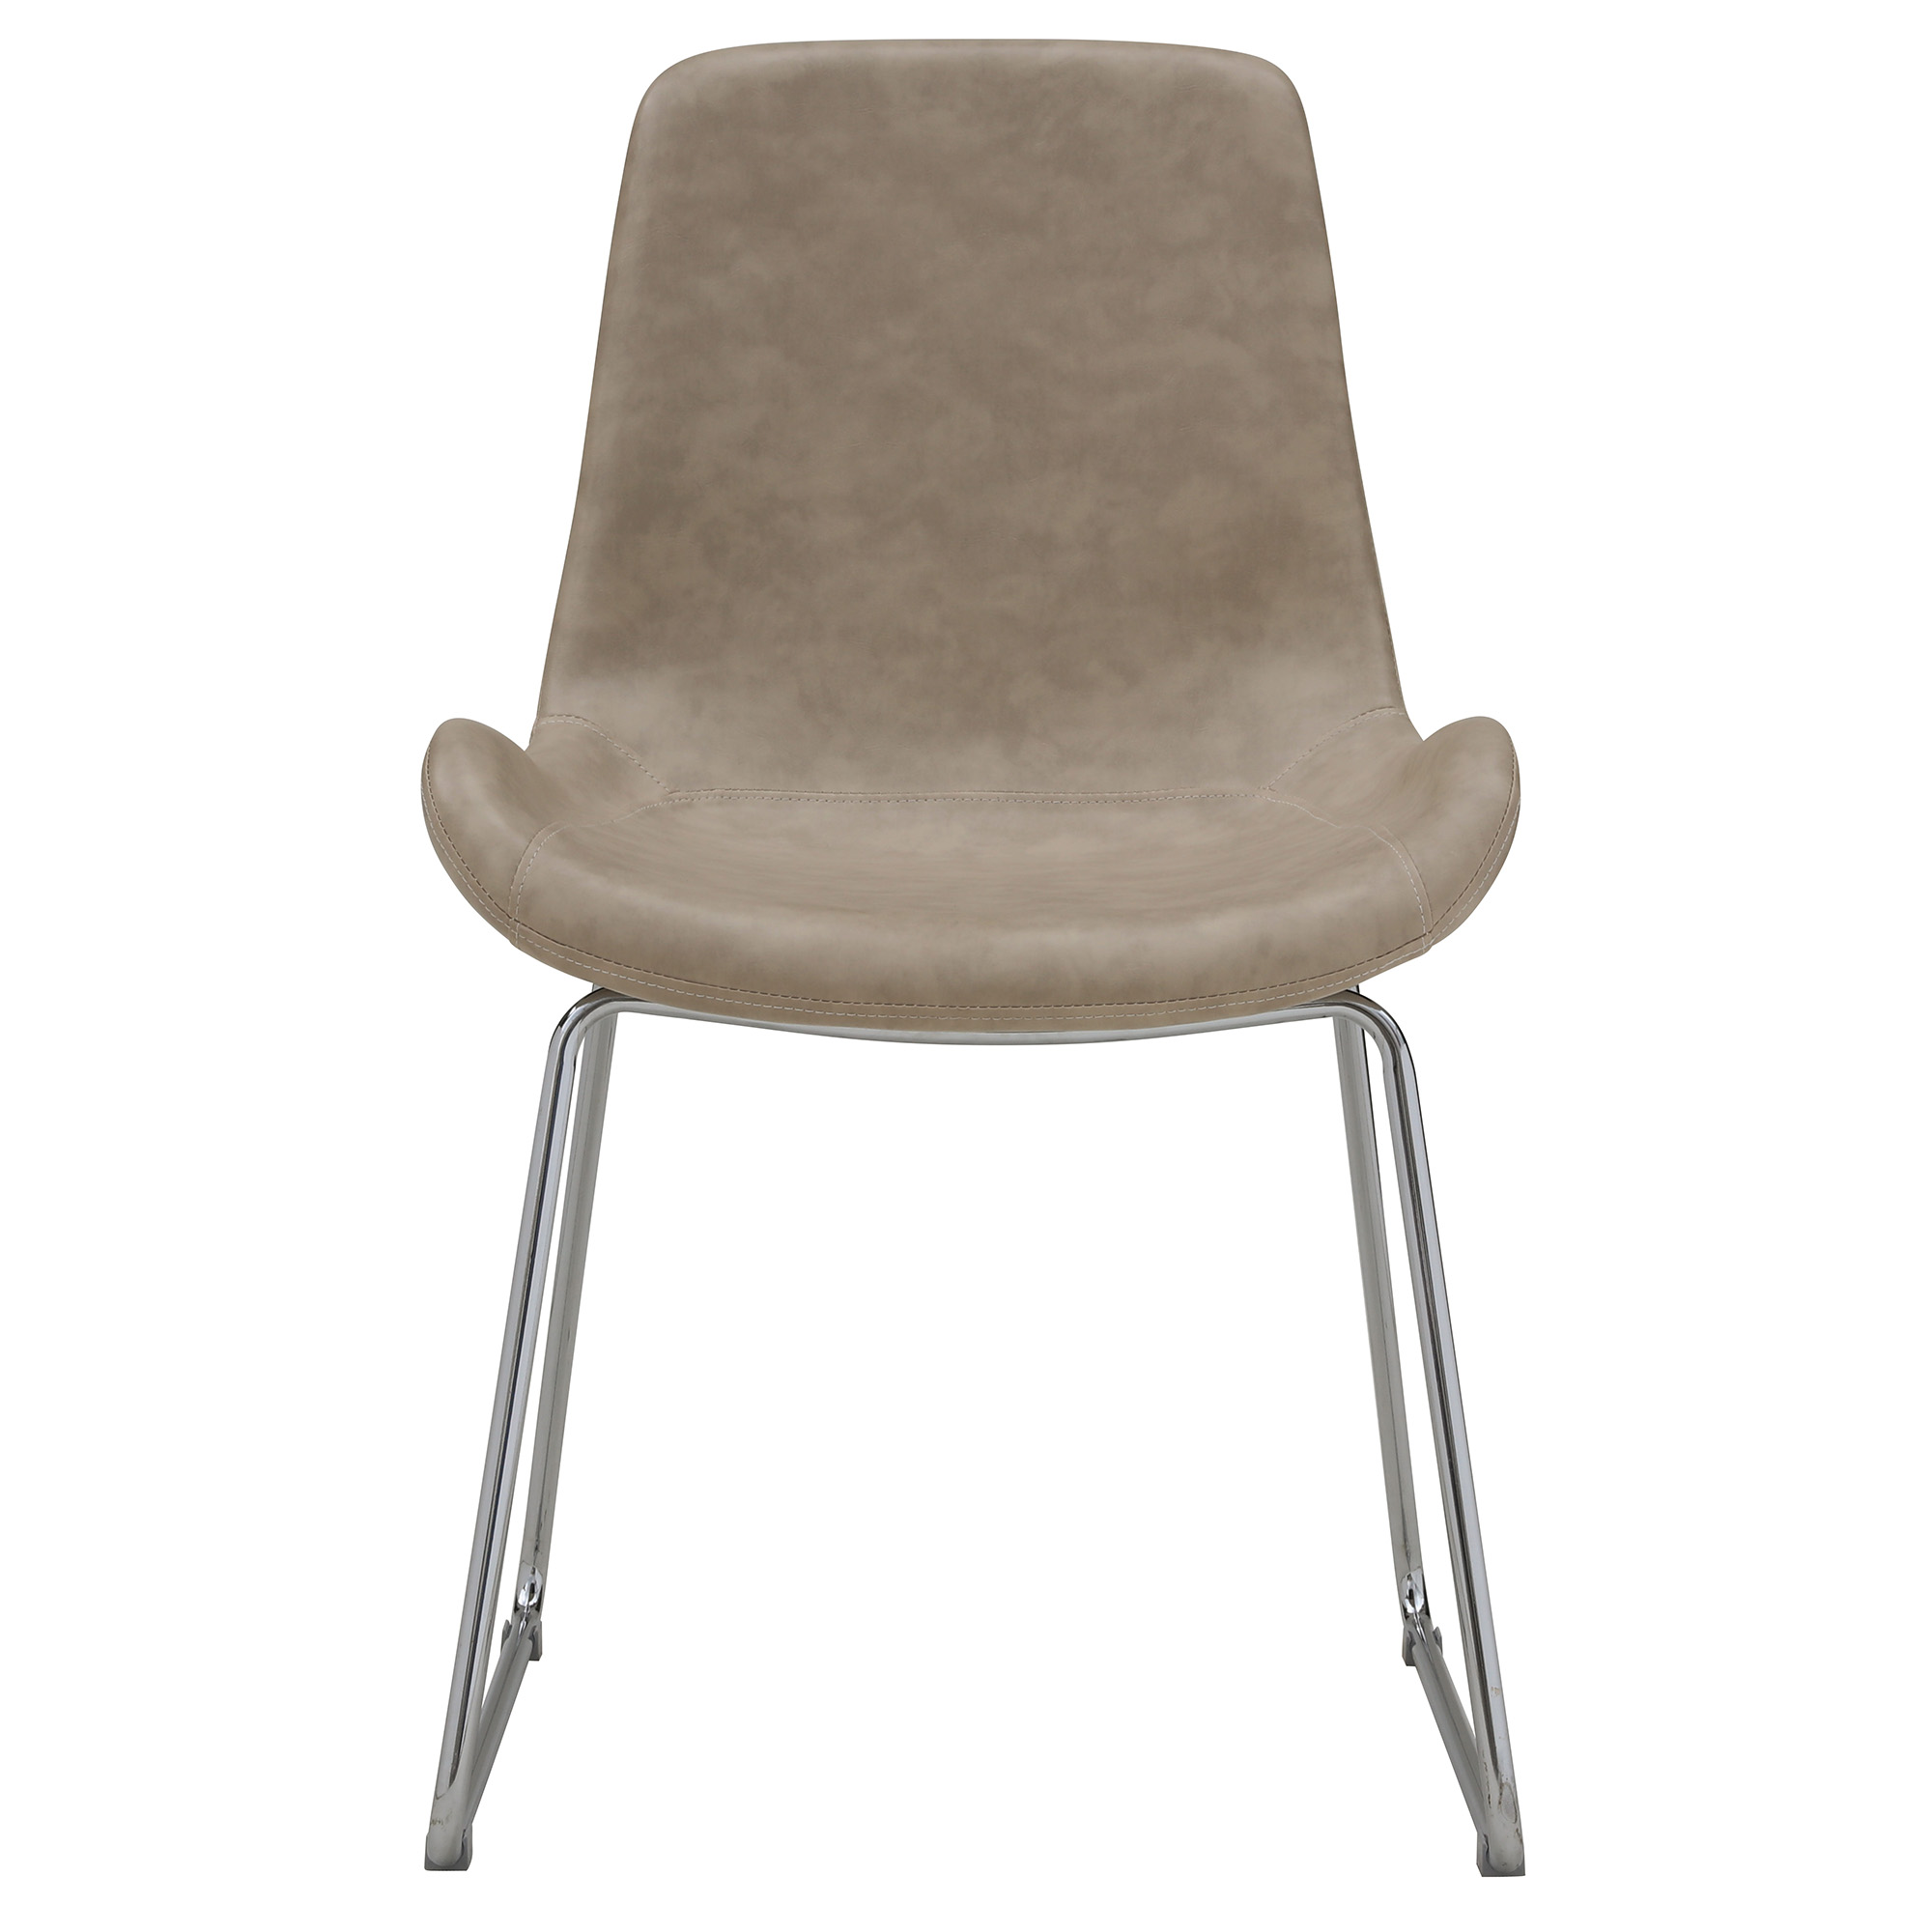 OTIS-ACCENT CHAIR-IVORY, 841173030858, Accent Chairs by Midha Furniture to Brampton, Mississauga, Etobicoke, Toronto, Scraborough, Caledon, Oakville, Markham, Ajax, Pickering, Oshawa, Richmondhill, Kitchener, Hamilton and GTA area